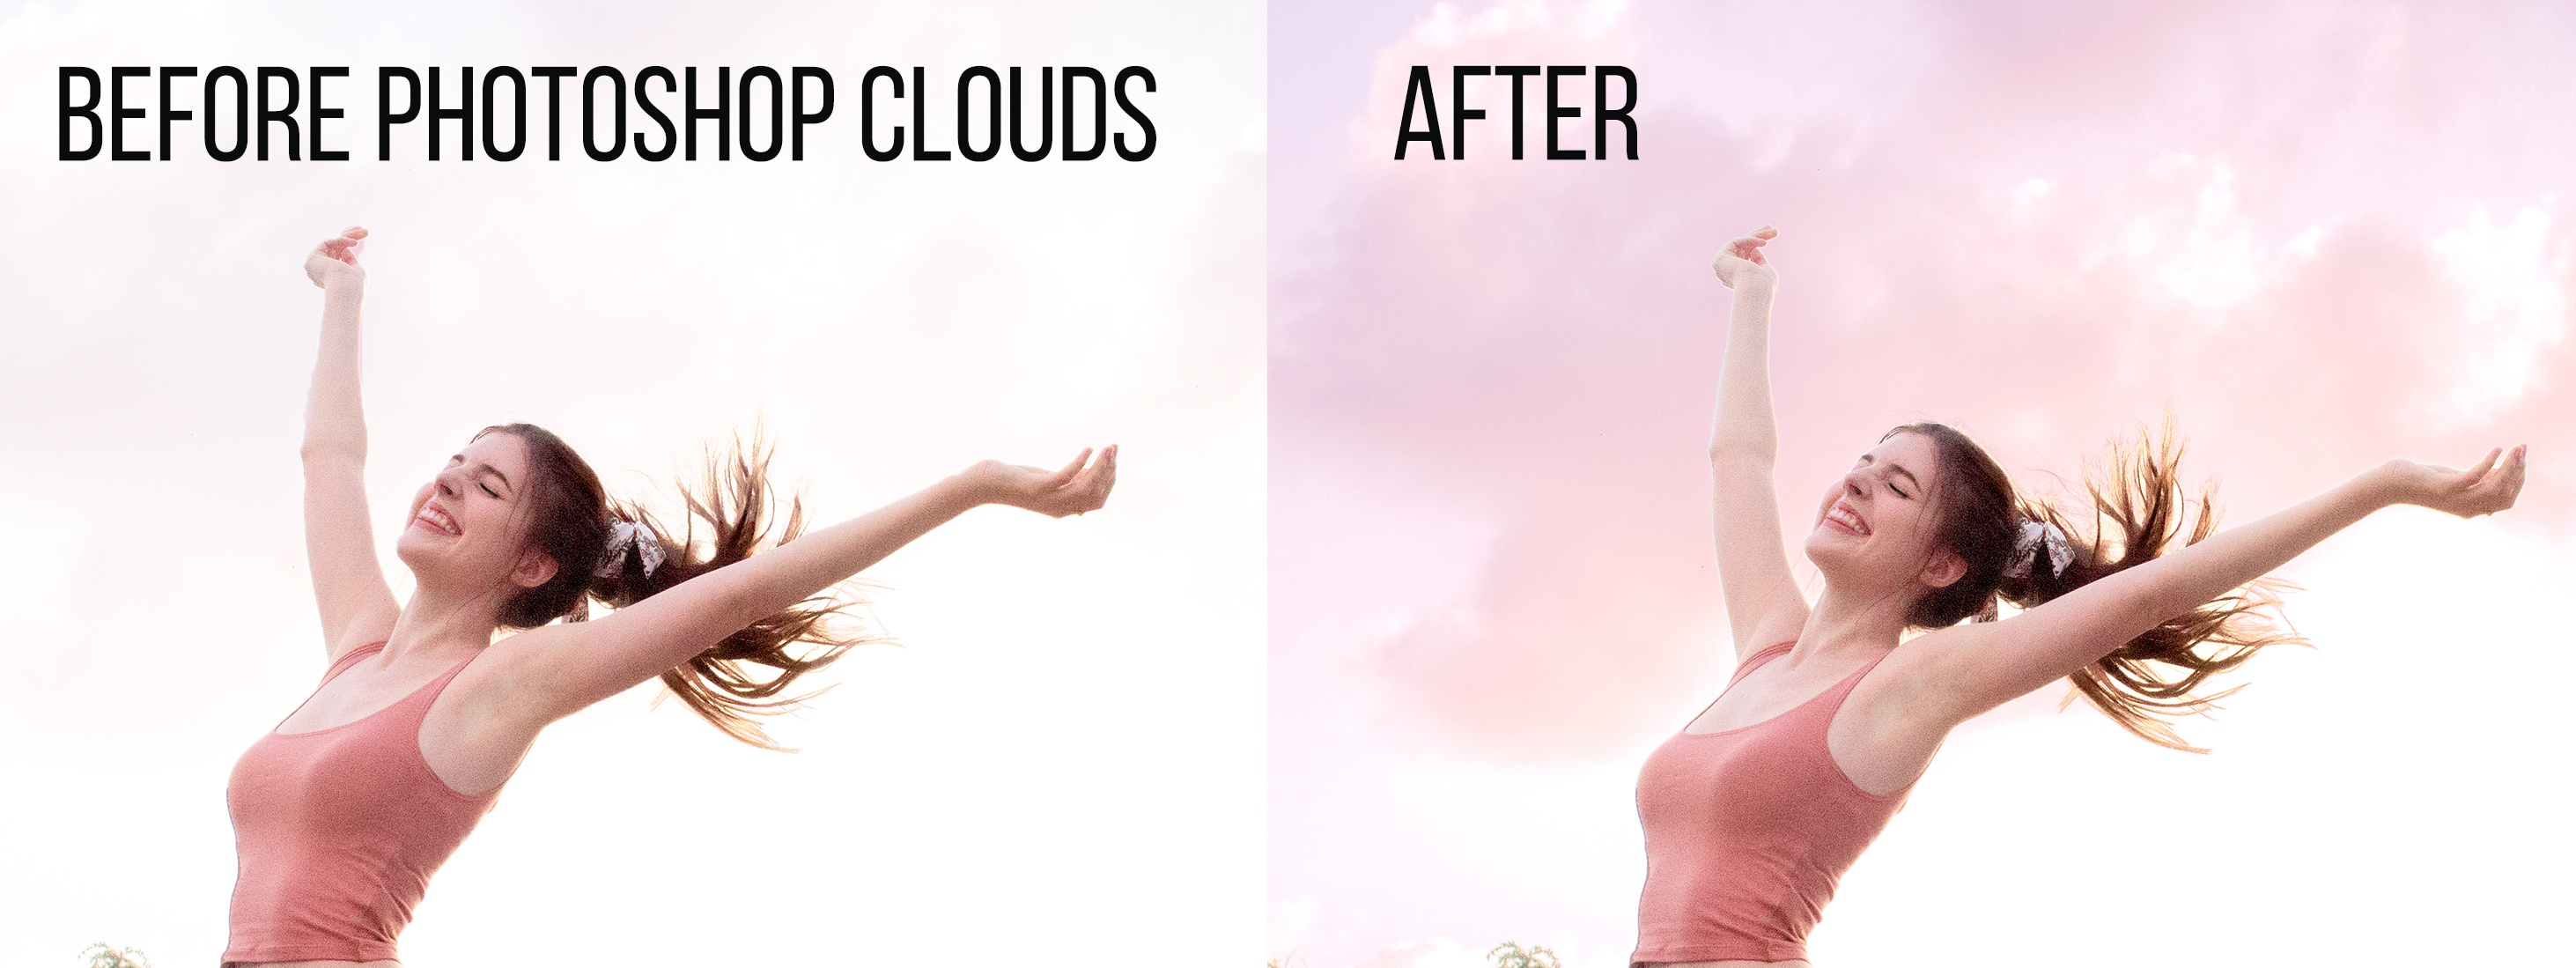 photoshop clouds